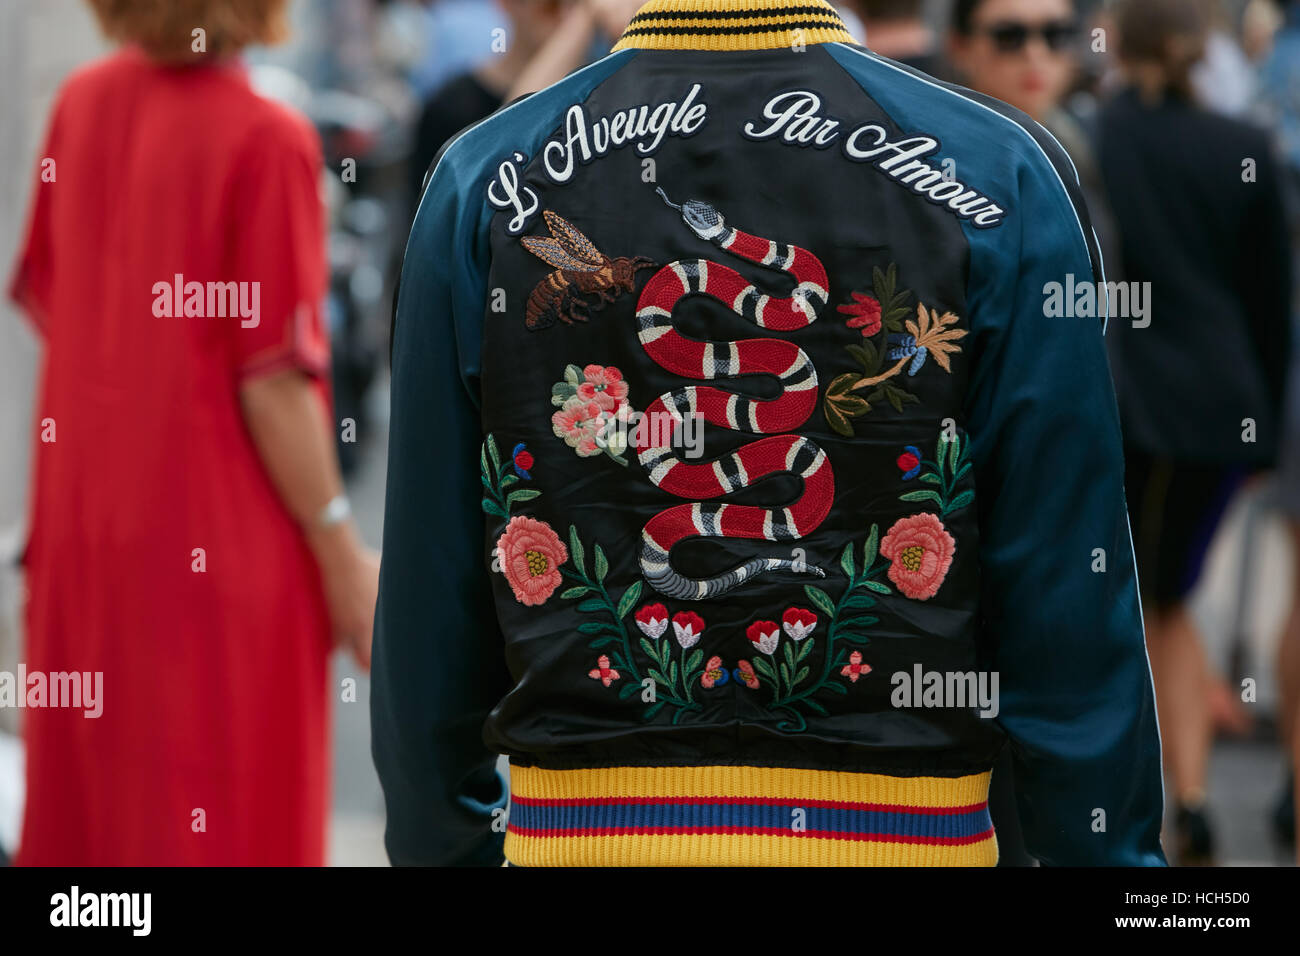 Man with Gucci bomber jacket 'Blind by love' with snake and floral decoration before fashion Tod's show, - Stock Image